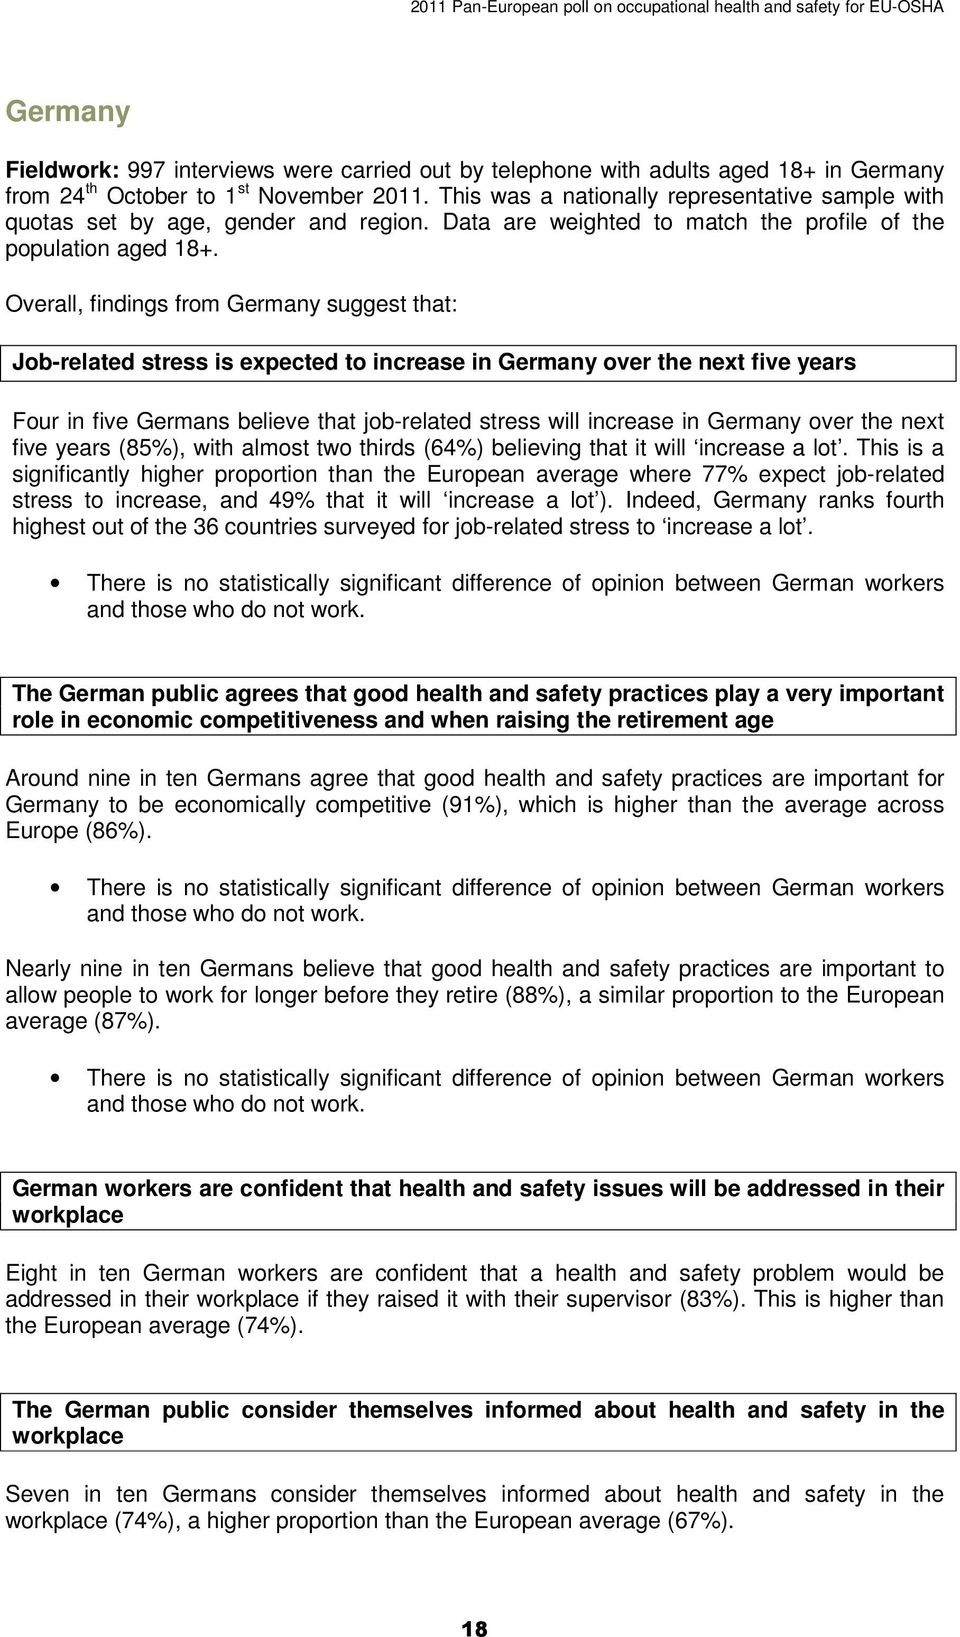 Overall, findings from Germany suggest that: Job-related stress is expected to increase in Germany over the next five years Four in five Germans believe that job-related stress will increase in